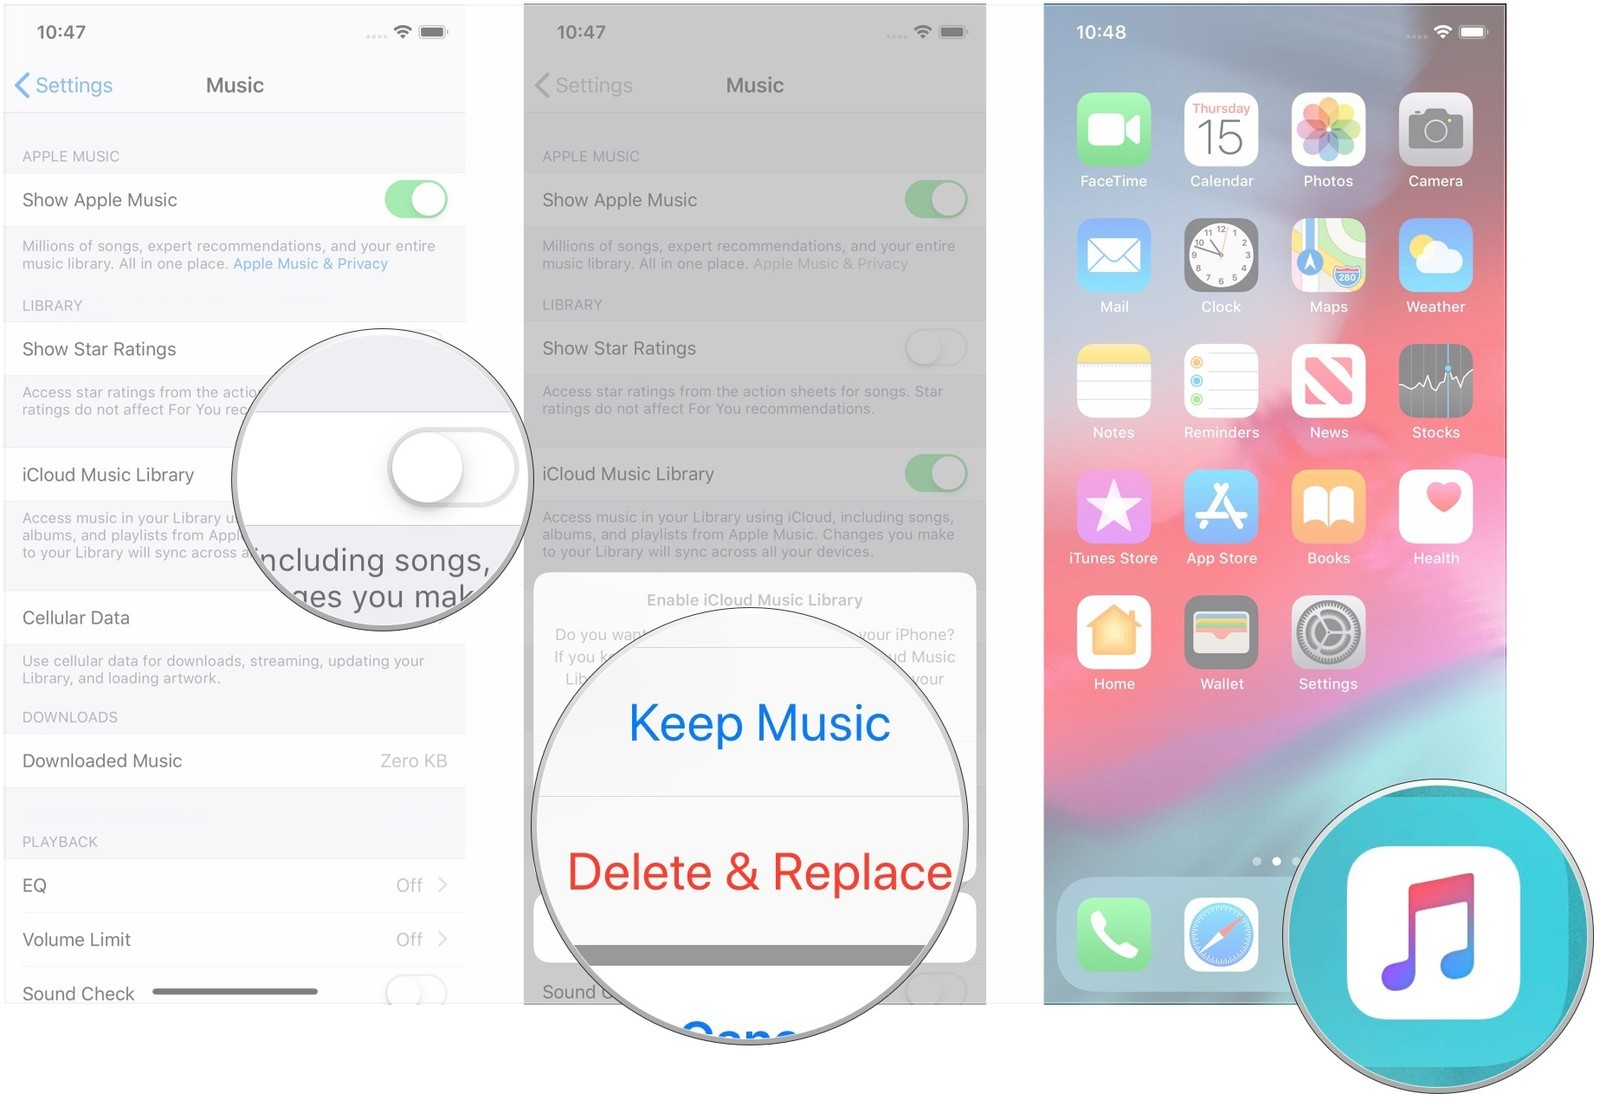 How to troubleshoot iCloud Music Library, Apple Music, and